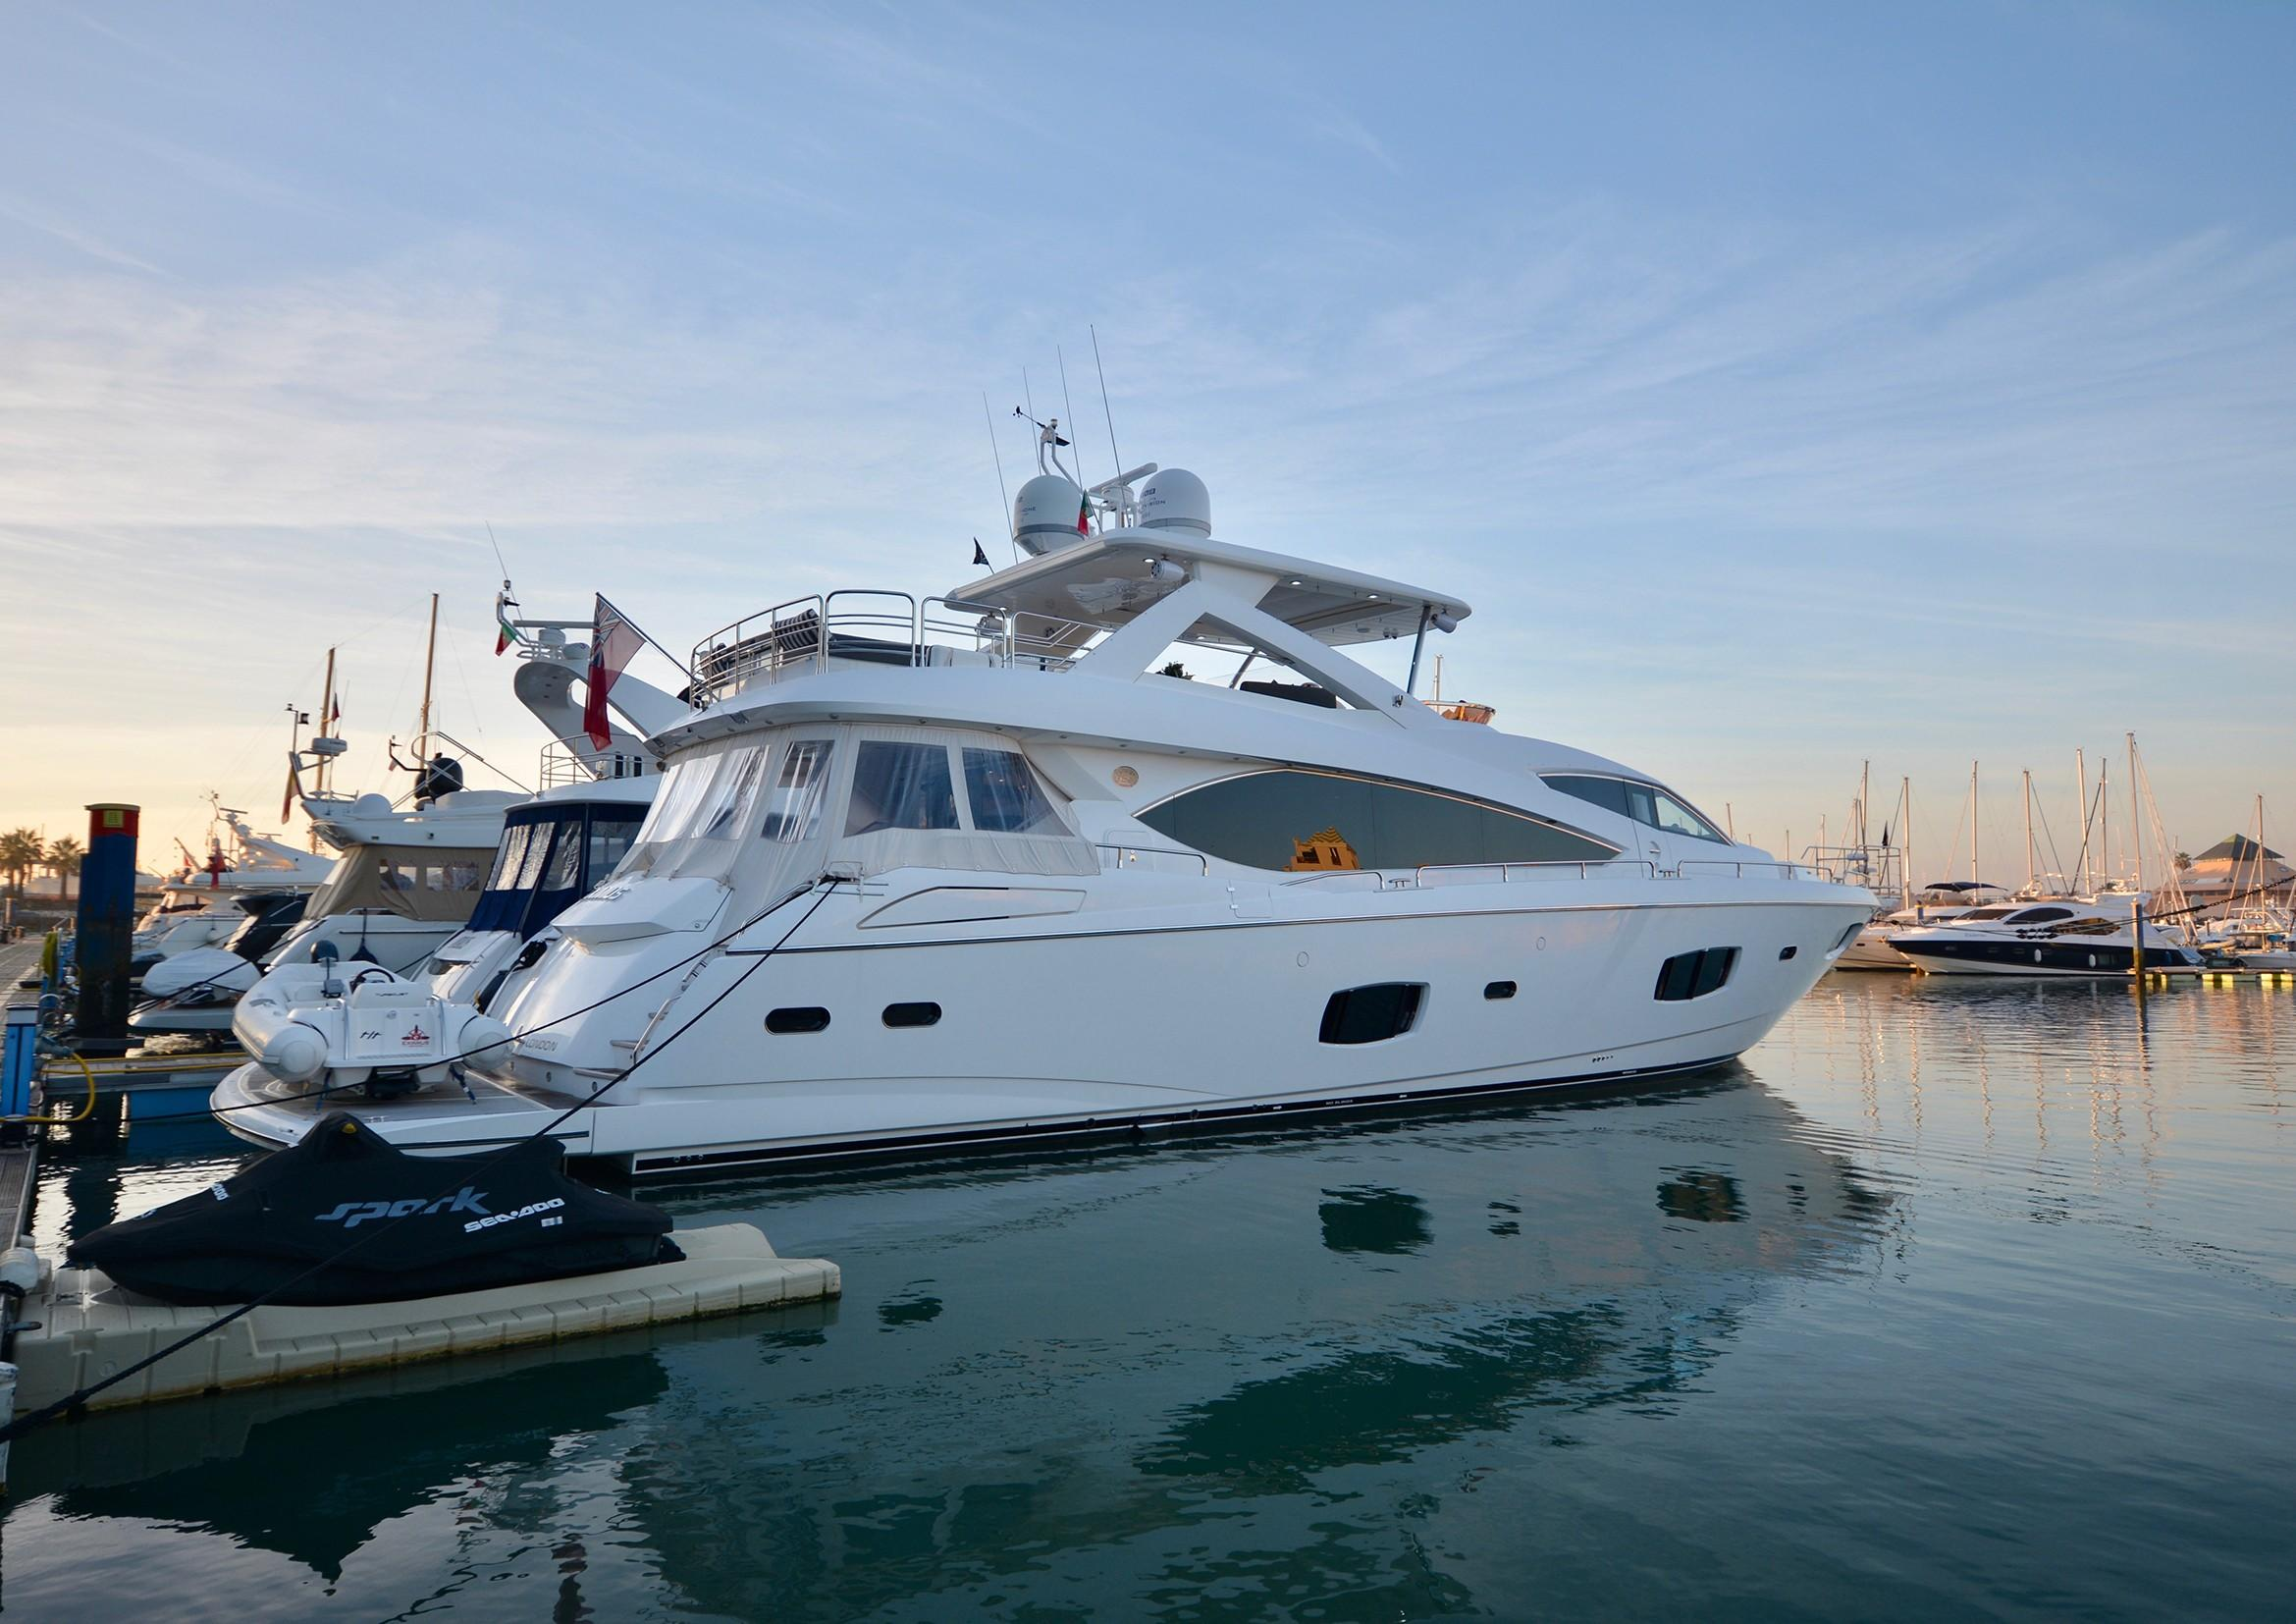 Expert Klein Mikrowelle 2011 Sunseeker 88 Yacht Power Boat For Sale Yachtworld